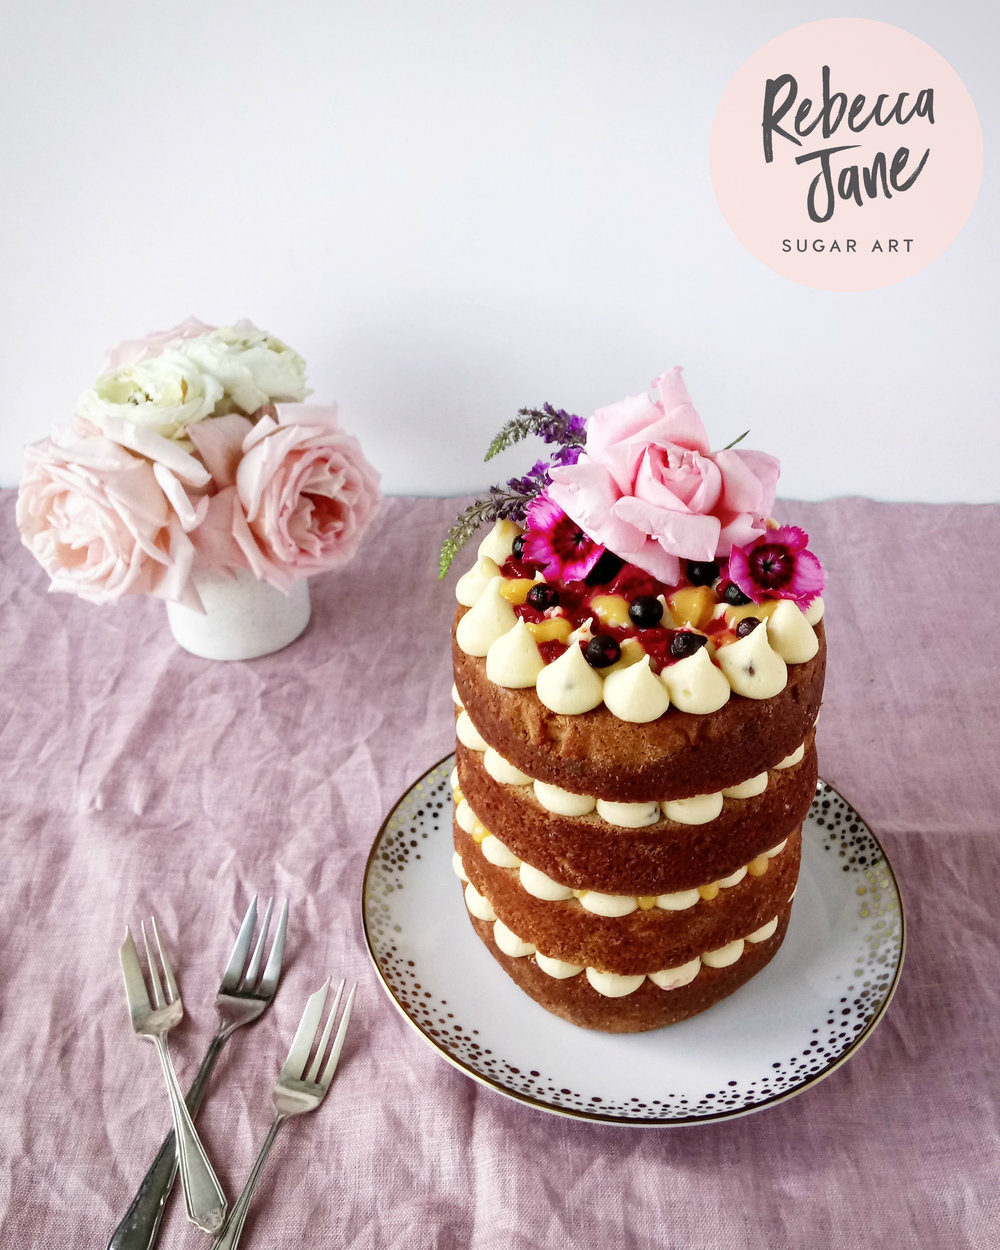 Rebecca Jane Sugar Art - Raspberry, passionfruit and white chocolate naked cake